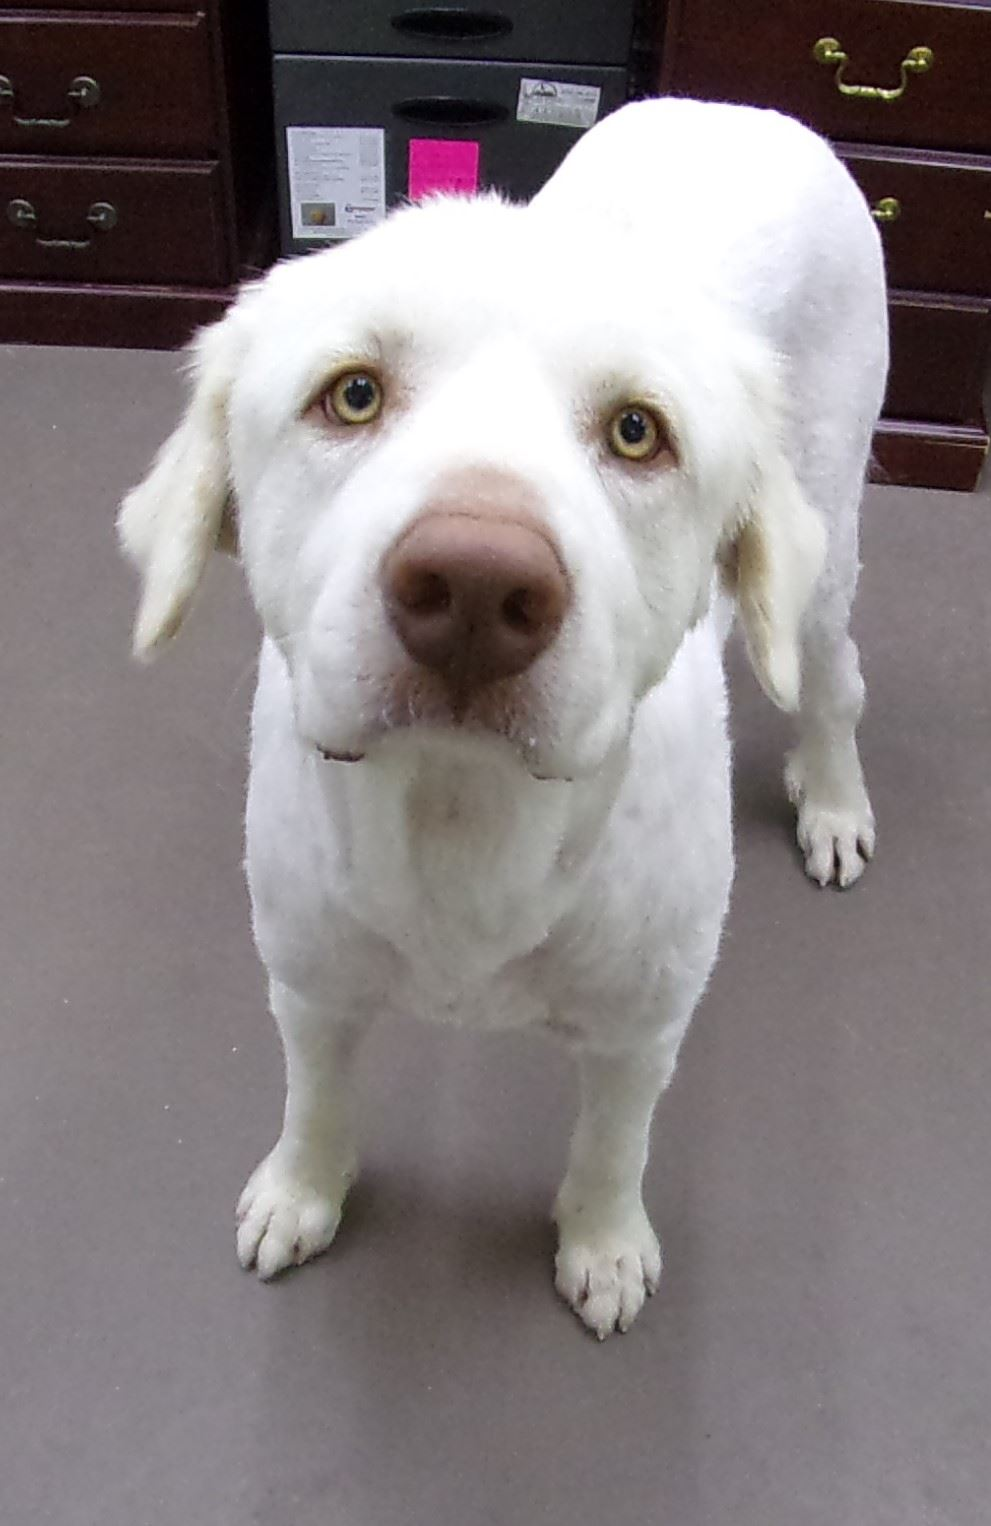 19-328 George male Pyrenees white - shaved fur